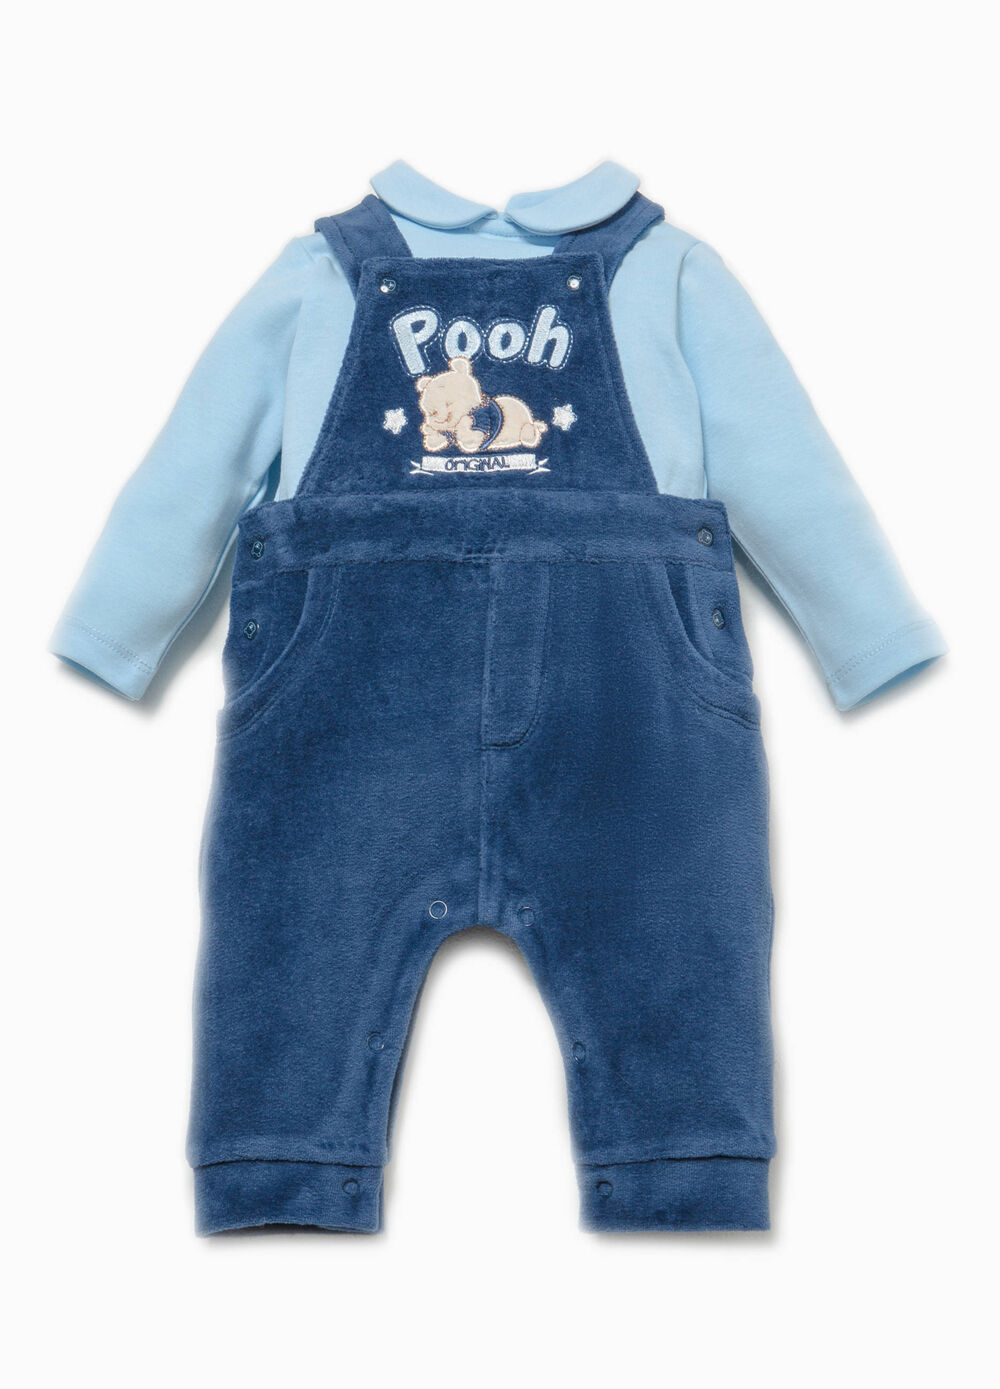 Winnie the Pooh T-shirt and dungarees set